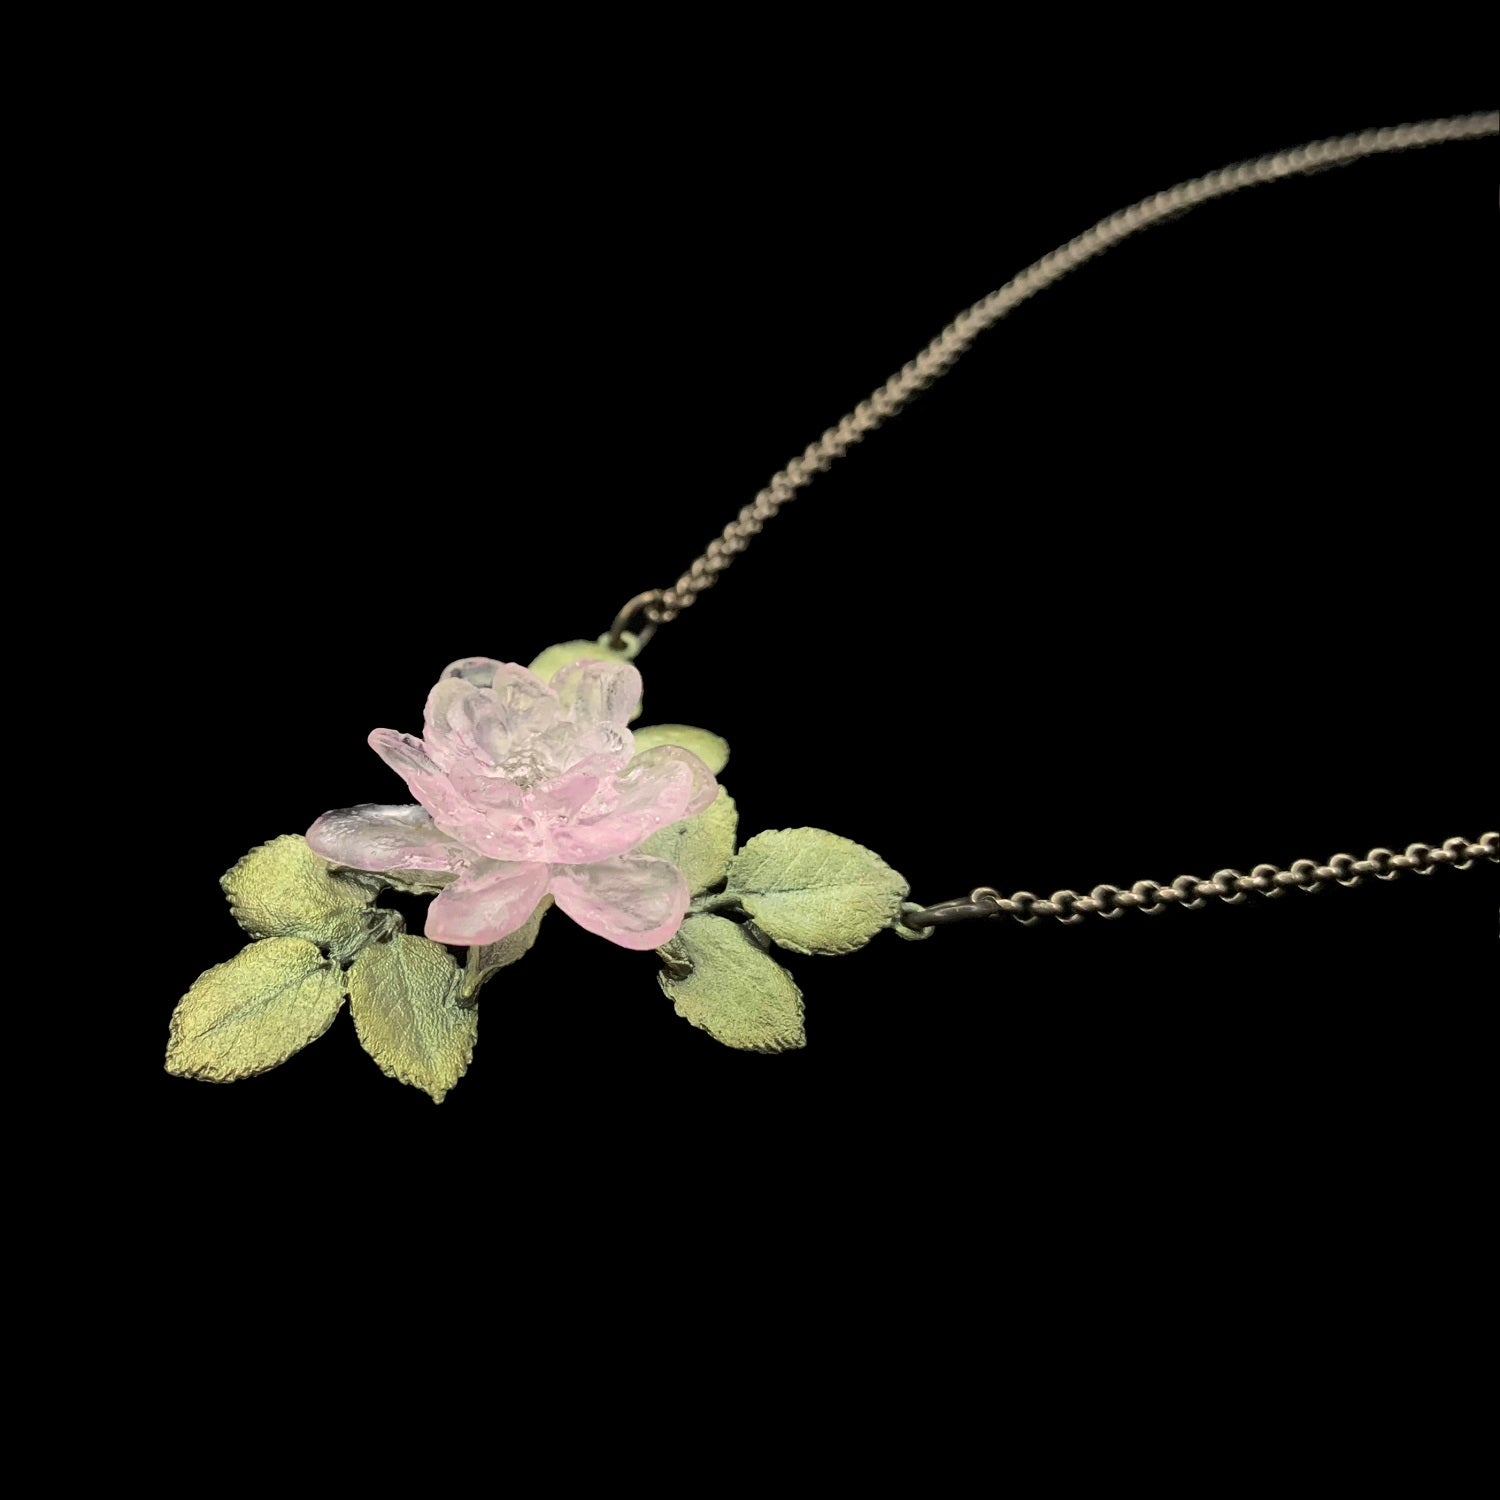 Blushing Rose Pendant - Single Flower